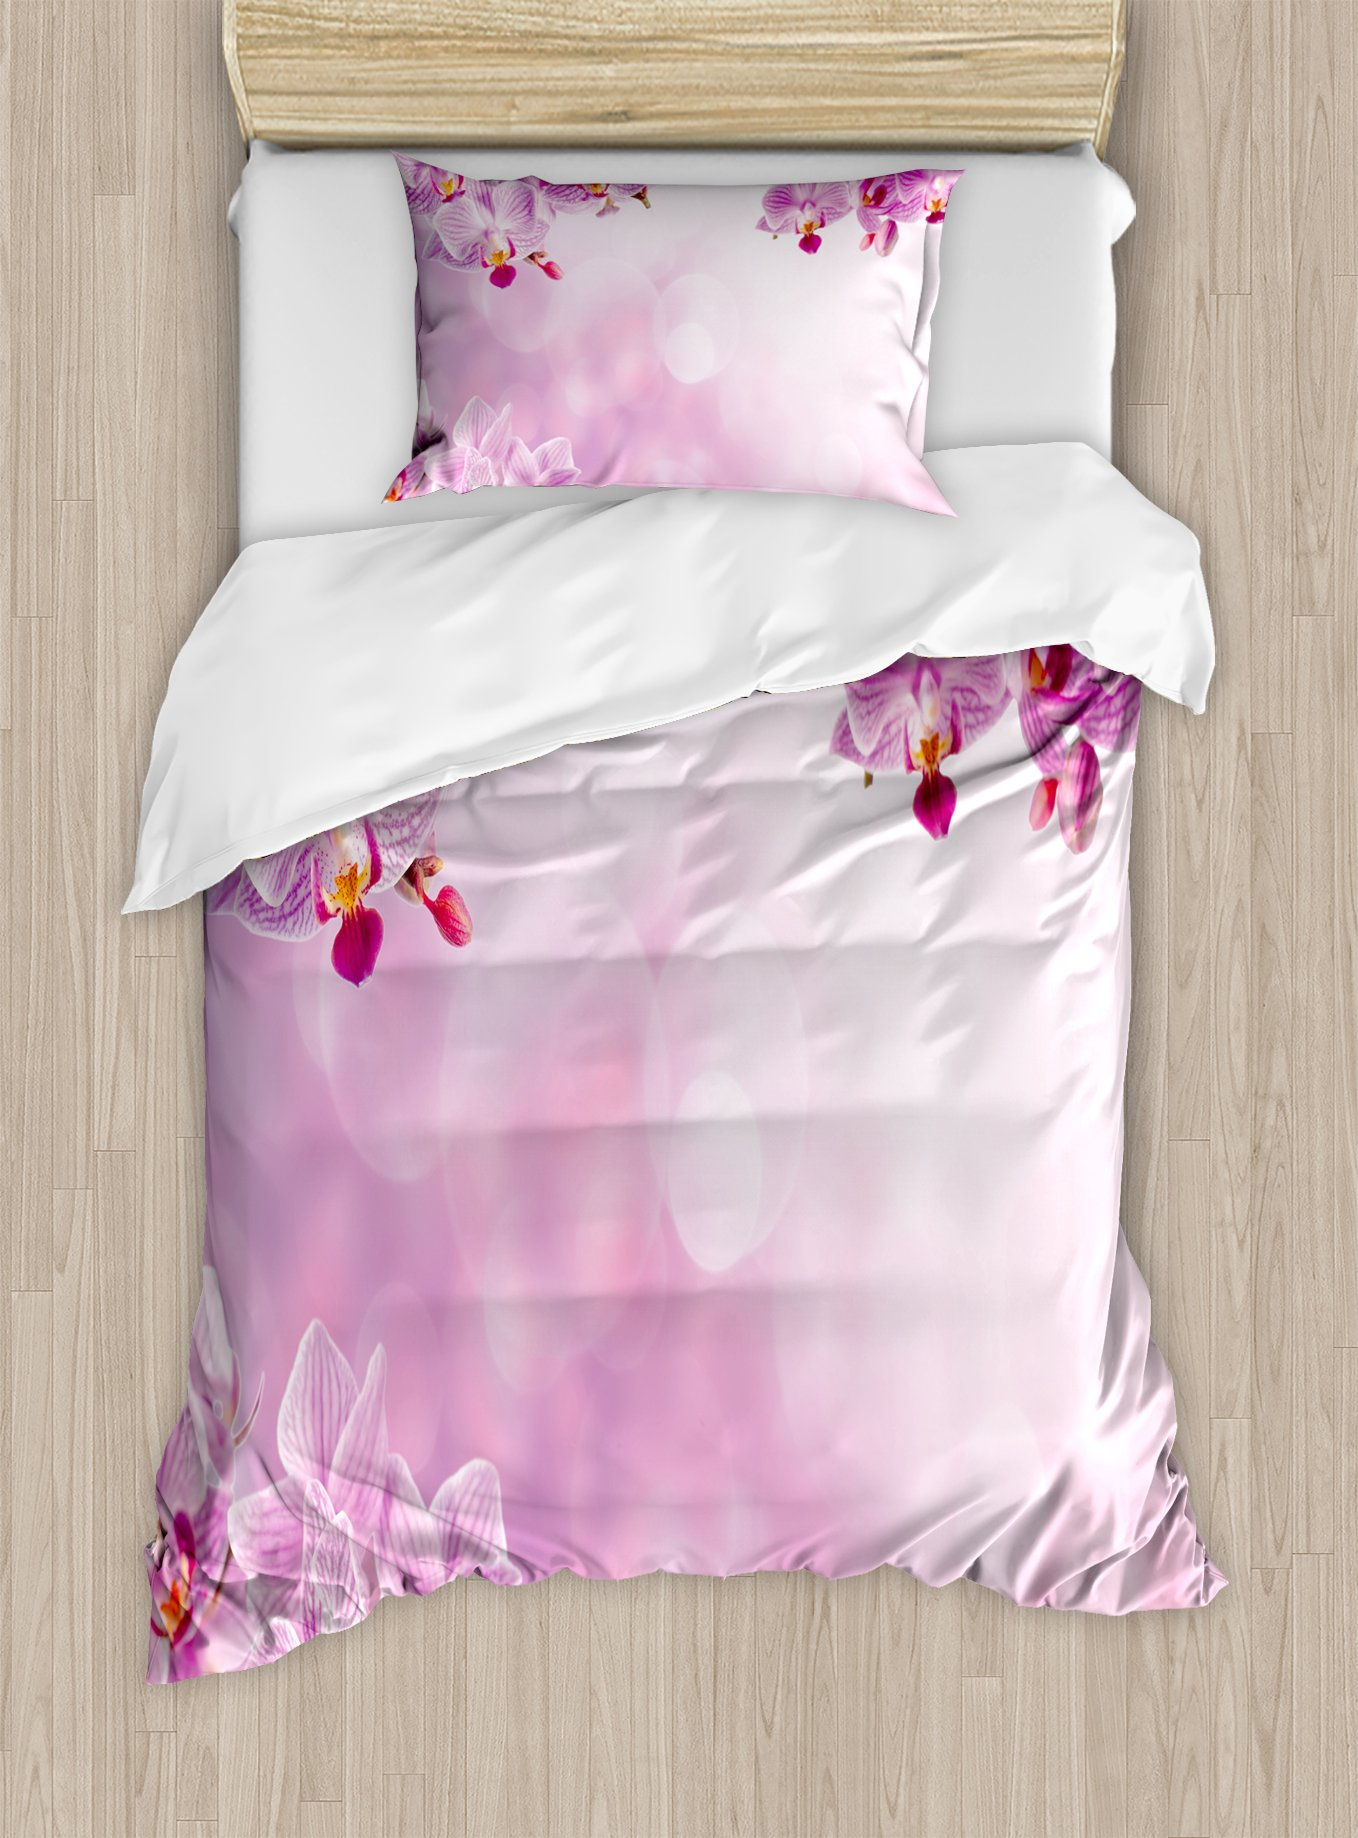 Ambesonne Spa Duvet Cover Set Twin Size, Orchid Petals in Monochrome Design Bouquet Spring Bloom Seedling Growth Peaceful Nature Print, Decorative 2 Piece Bedding Set with 1 Pillow Sham, Pink